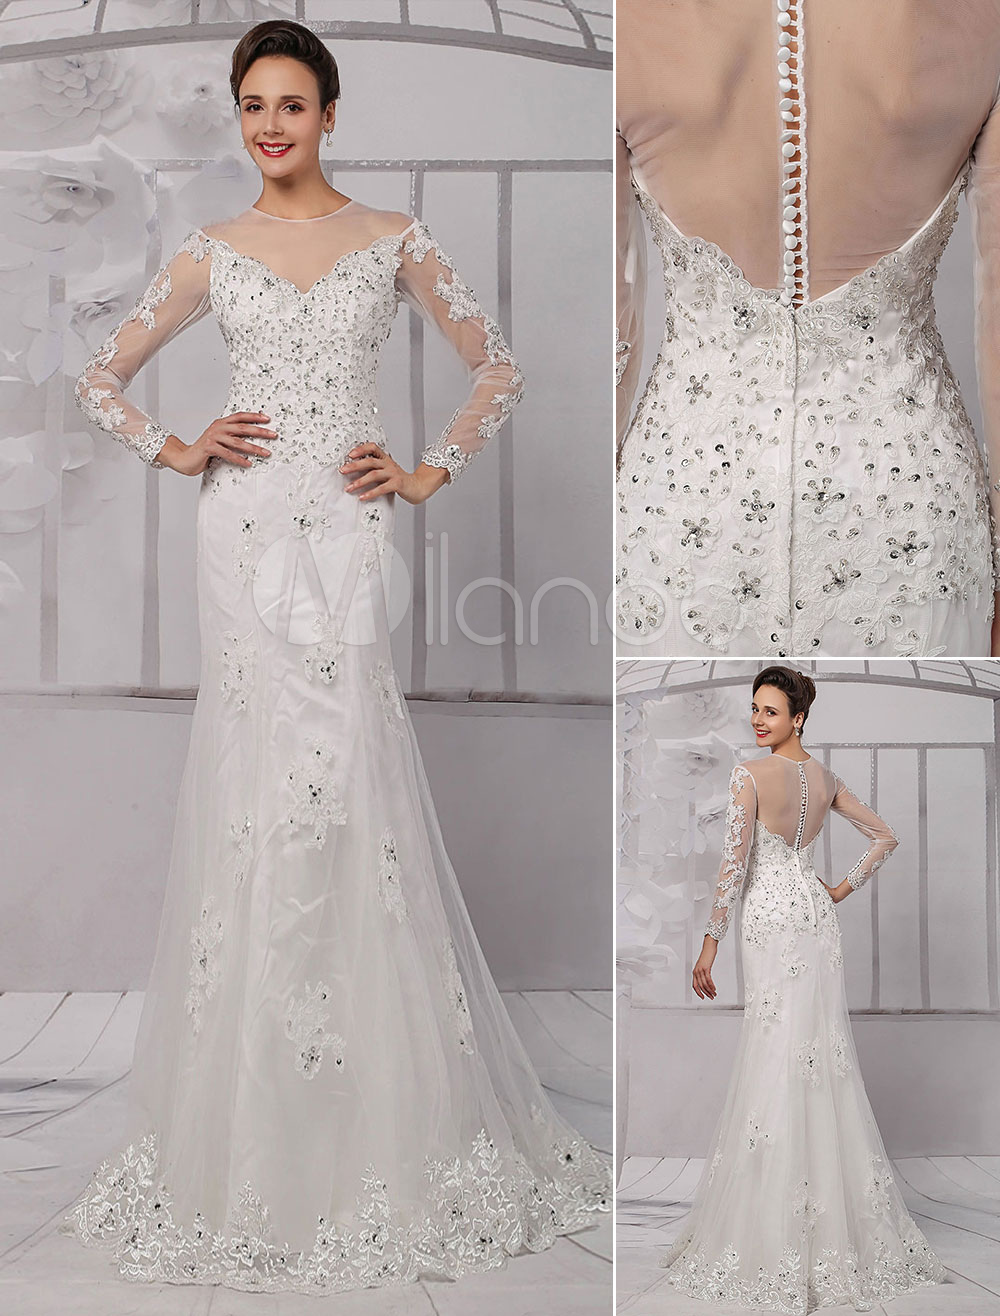 3ad253c9b0a Lace Illusion Neckline Long-sleeves Knee-length Sheath Wedding Dress With Beading  Sequins Milanoo - Milanoo.com